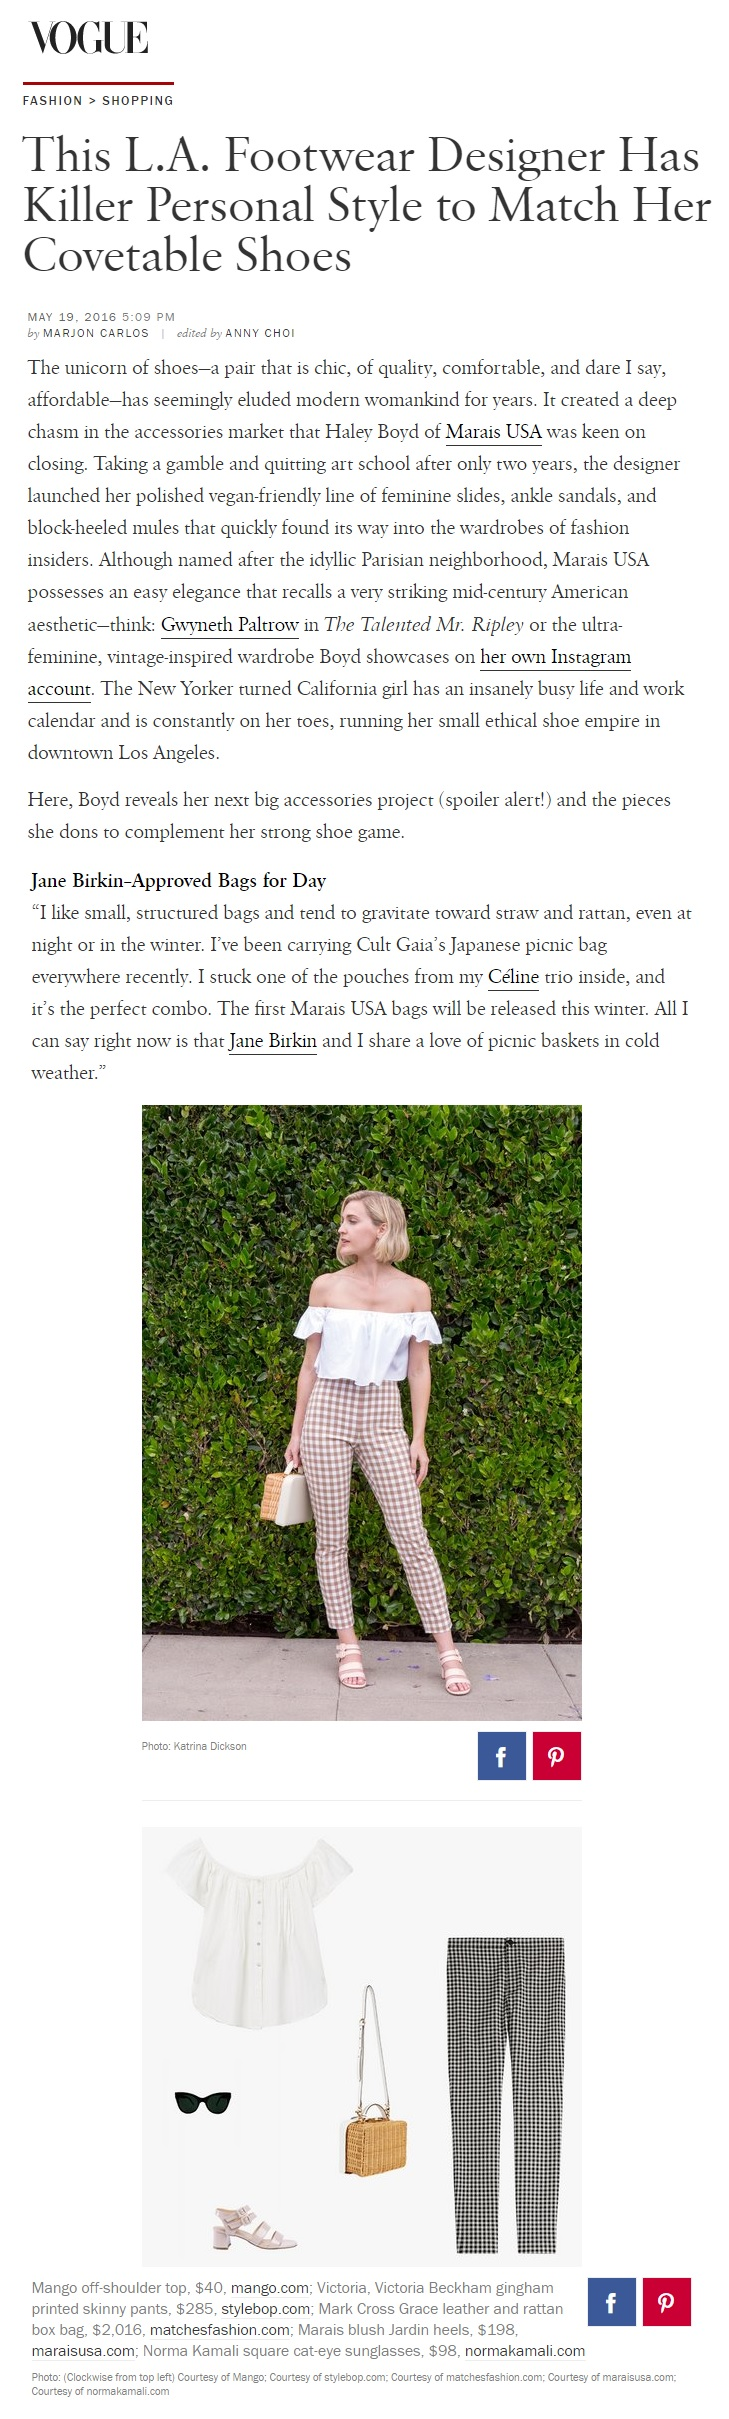 Vogue.com - This L.A. Footwear Designer Has Killer Personal Style to Match Her Covetable Shoes - 5.19.16.jpg